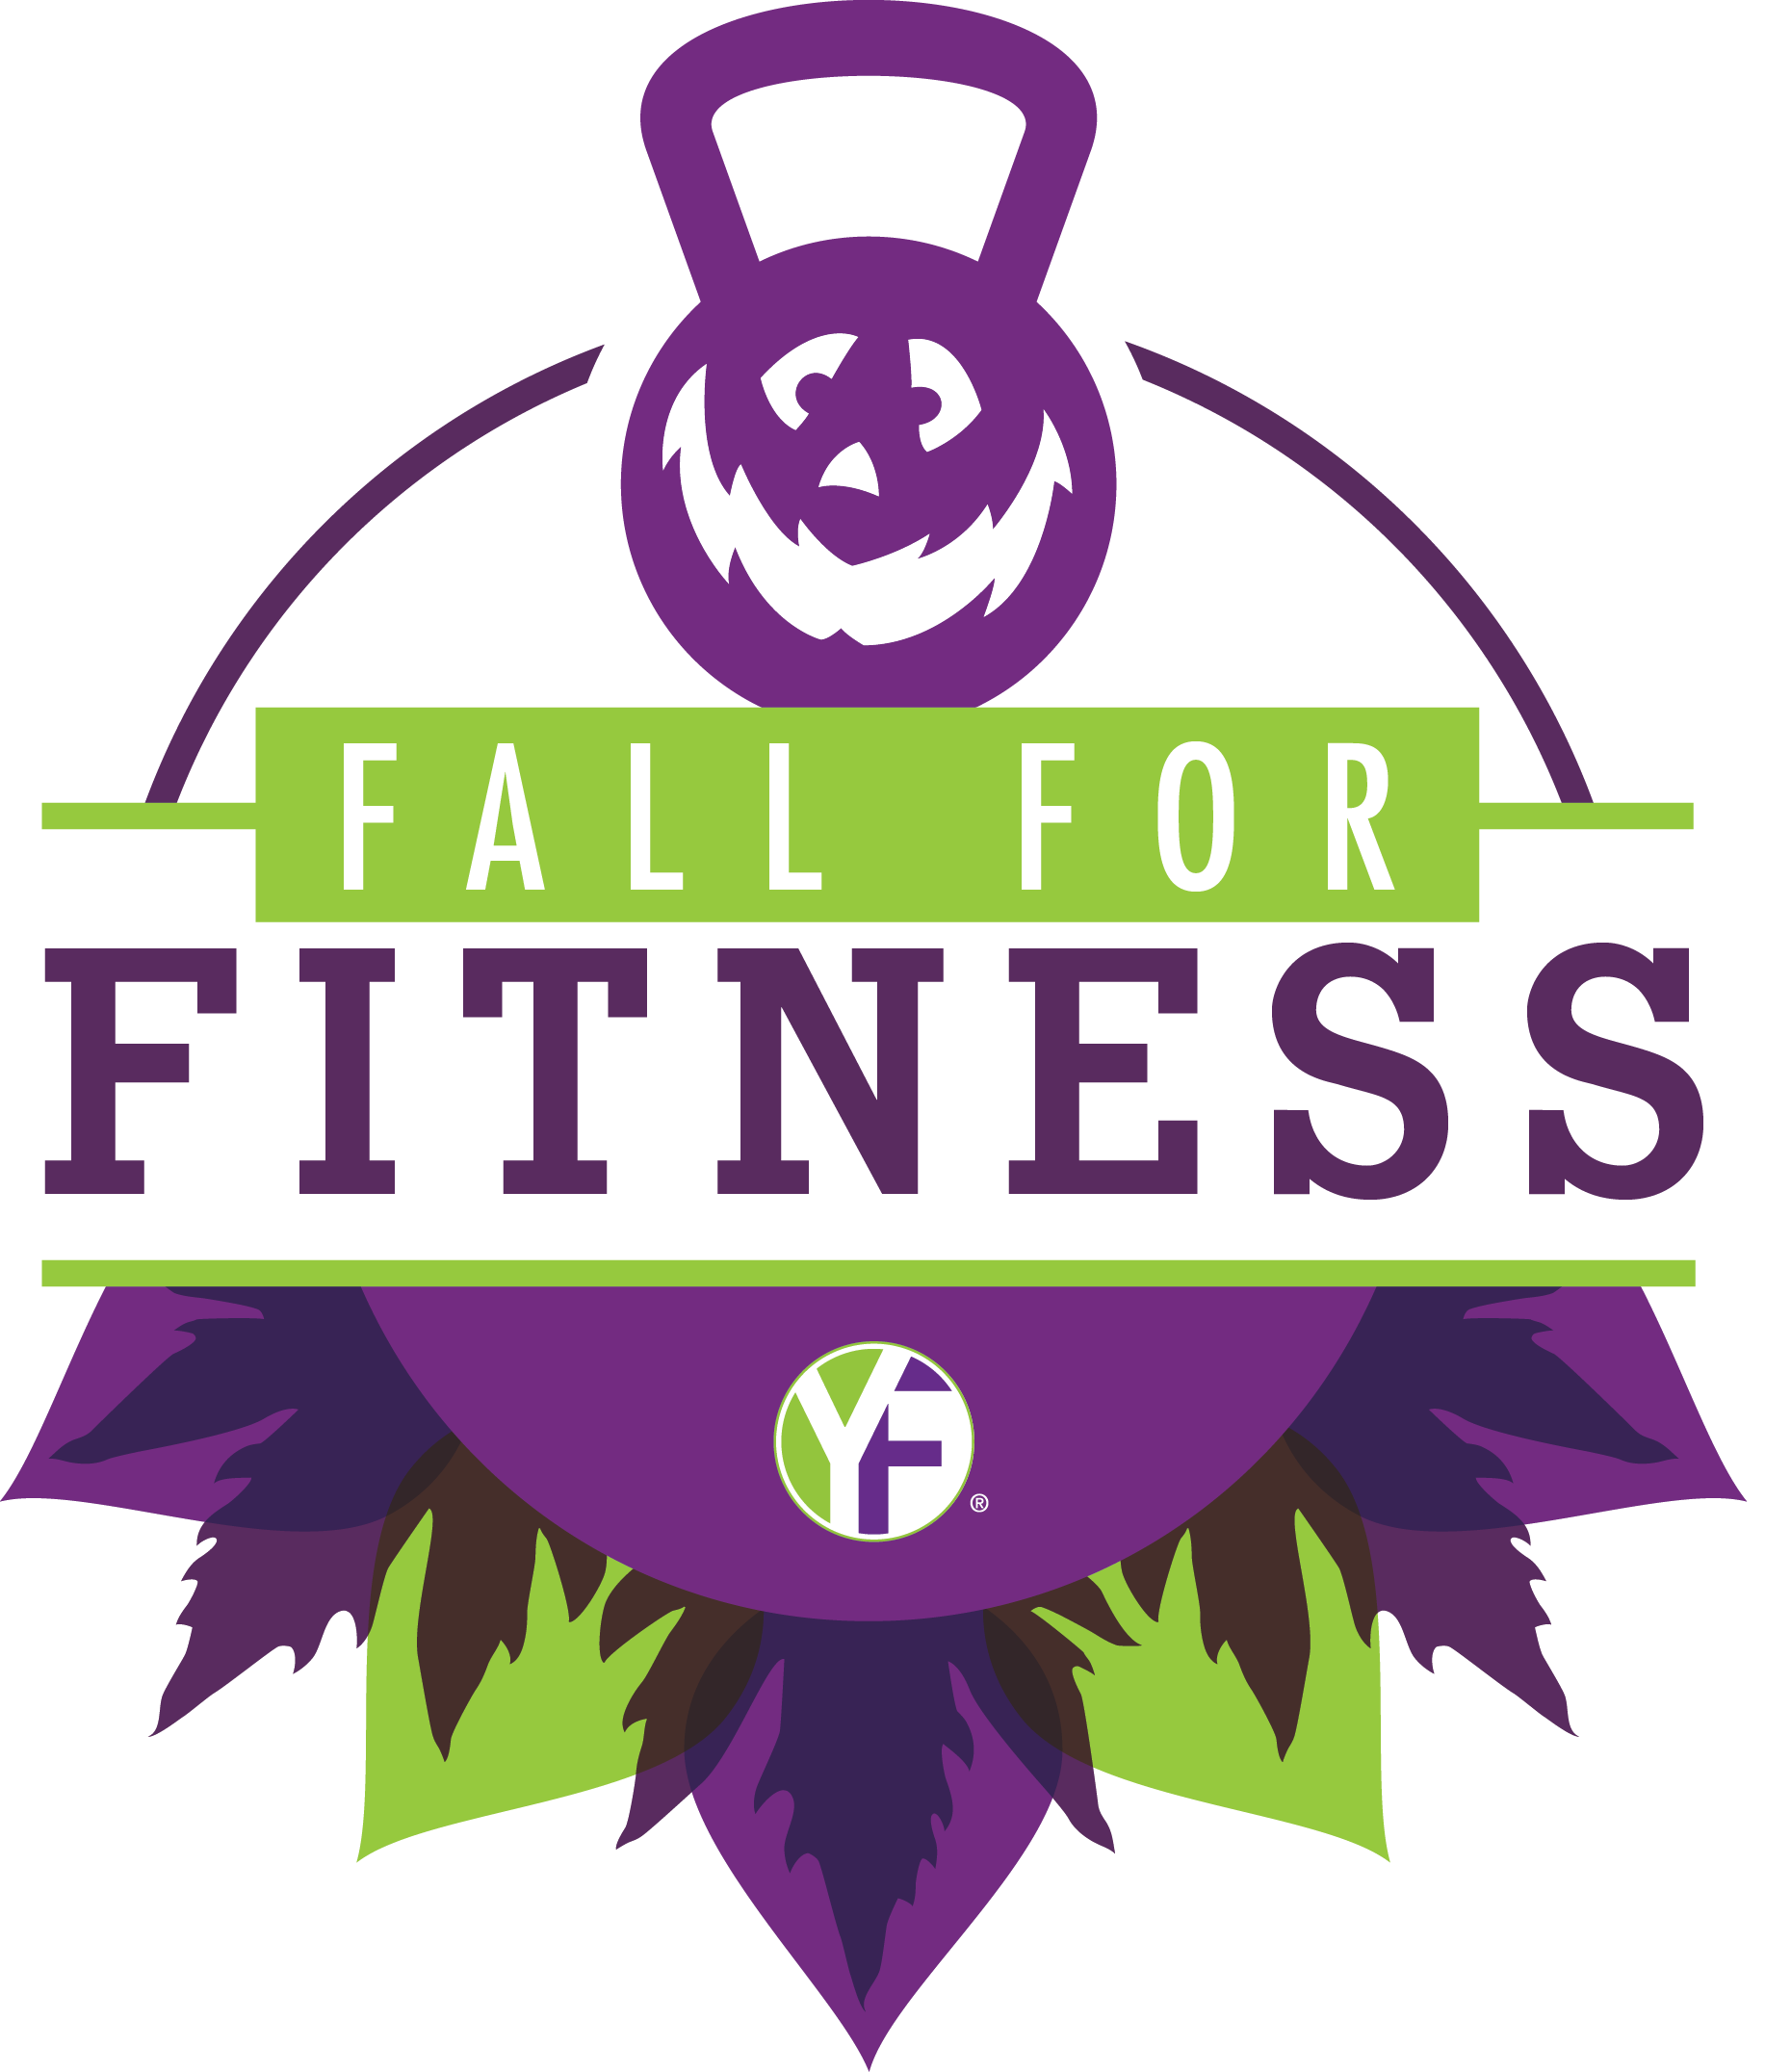 Exercising clipart effort. Fall for fitness with